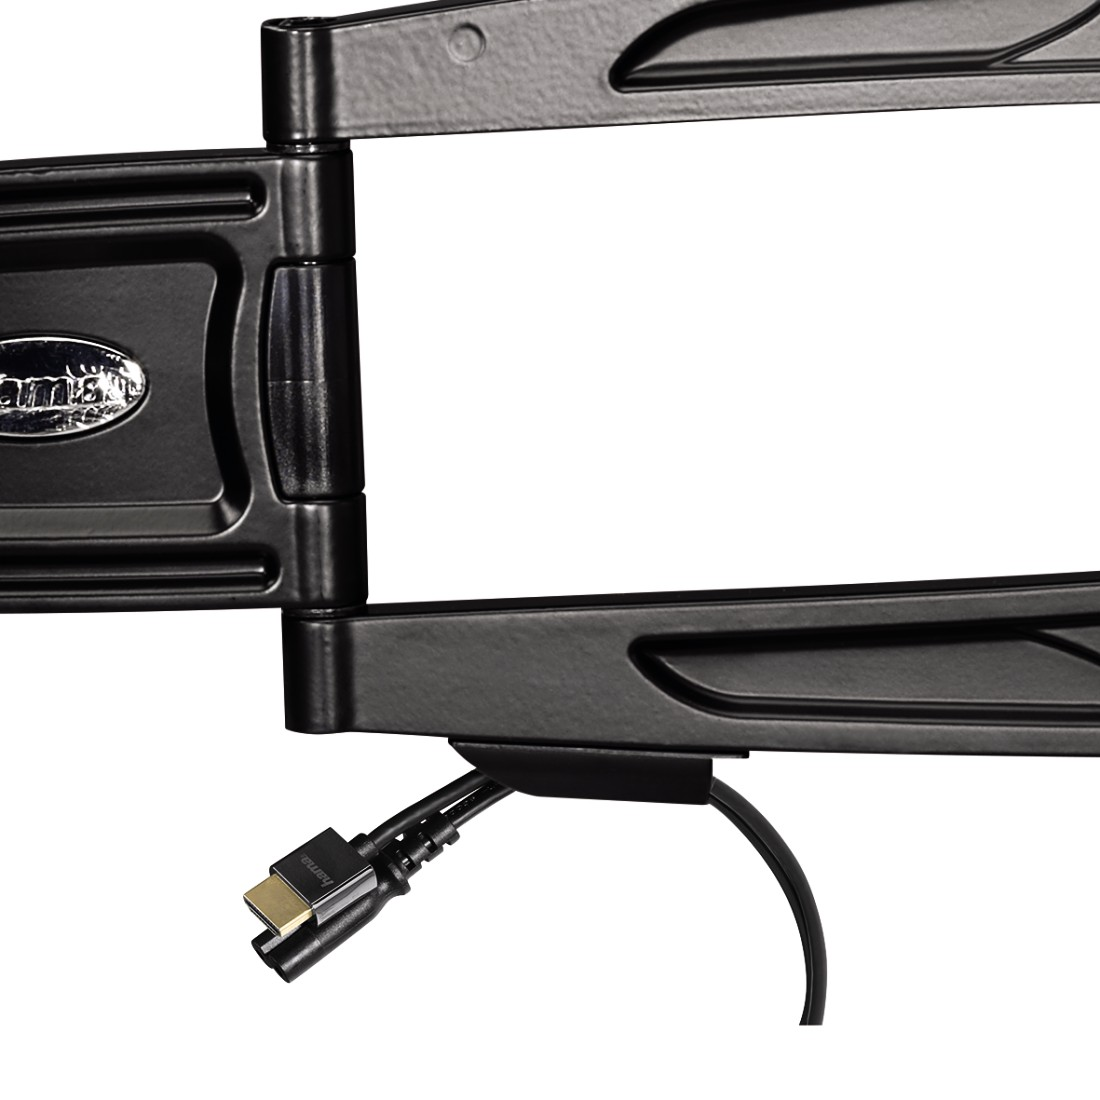 dex4 High-Res Detail 4 - Hama, Ultraslim FULLMOTION TV Wall Bracket, 3 stars, 165 cm (65), 2 arms, bk